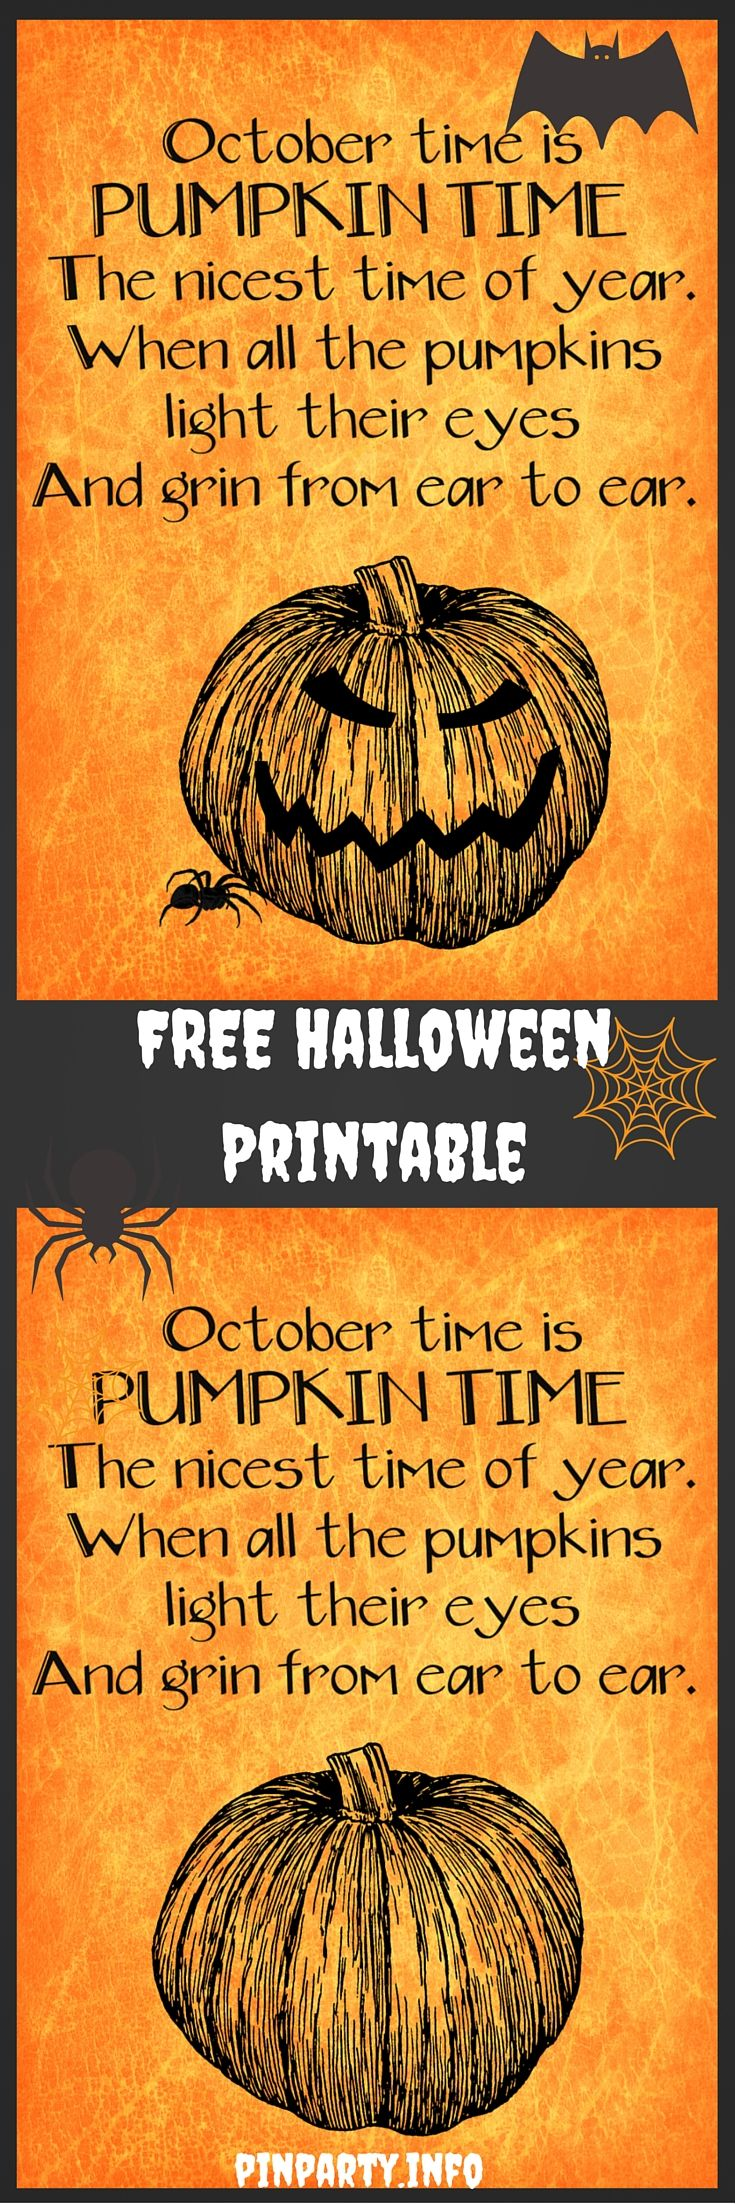 This FREE Halloween Printable Comes In Two Choices, Scary And Not So Scary